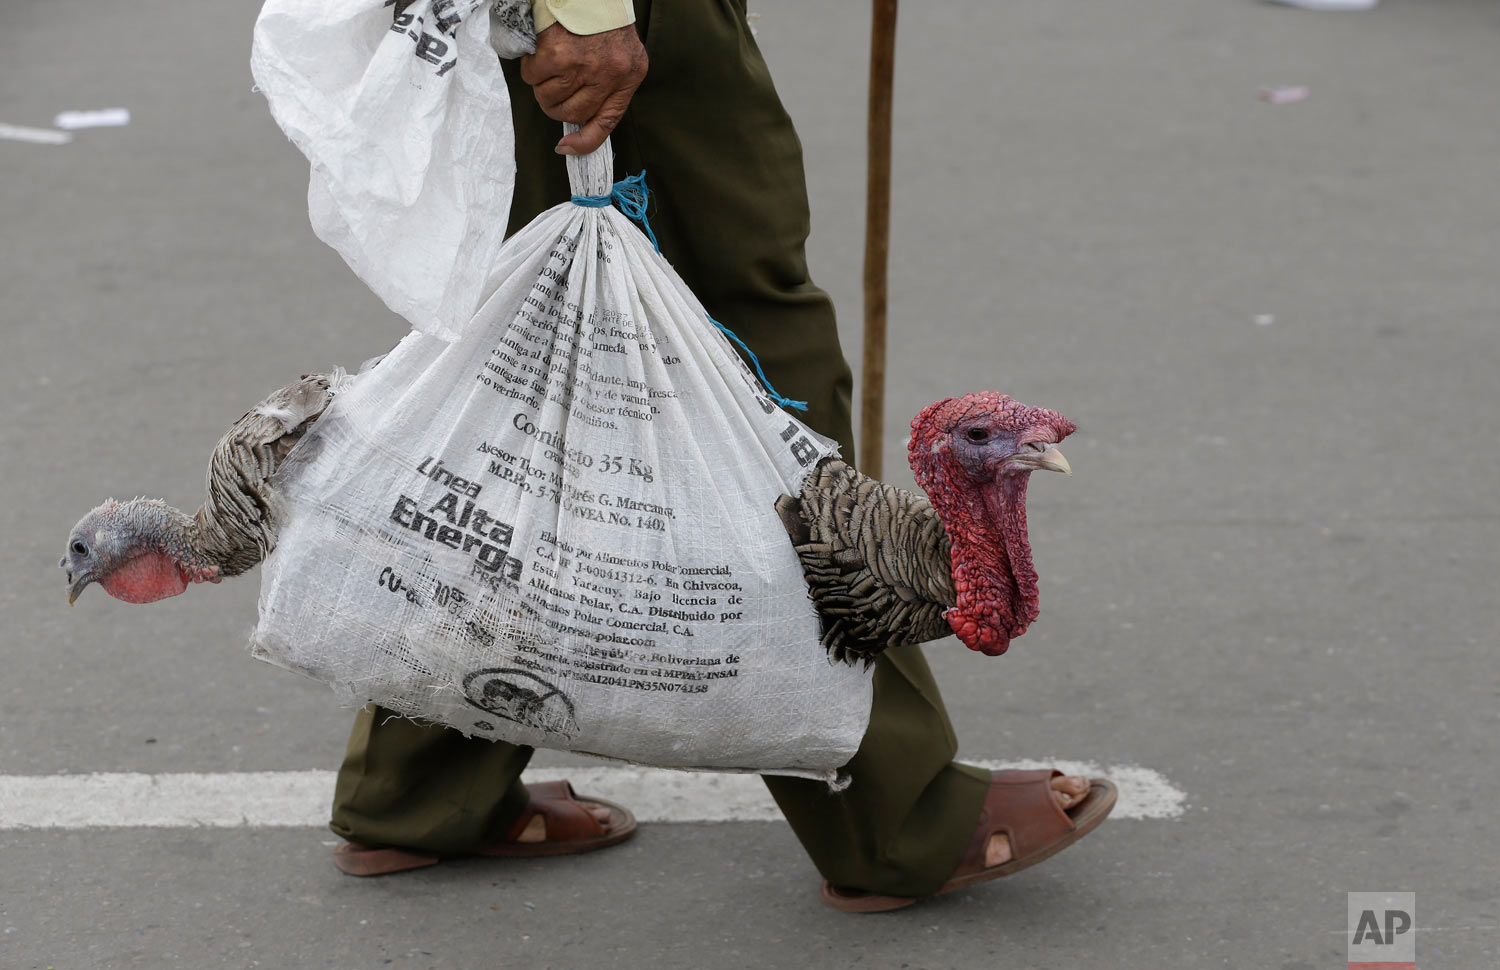 Marco, a Venezuelan man, transports turkeys in a burlap bag, in La Parada, near Cucuta, Colombia, on the border with Venezuela, Feb. 9, 2019. (AP Photo/Fernando Vergara)